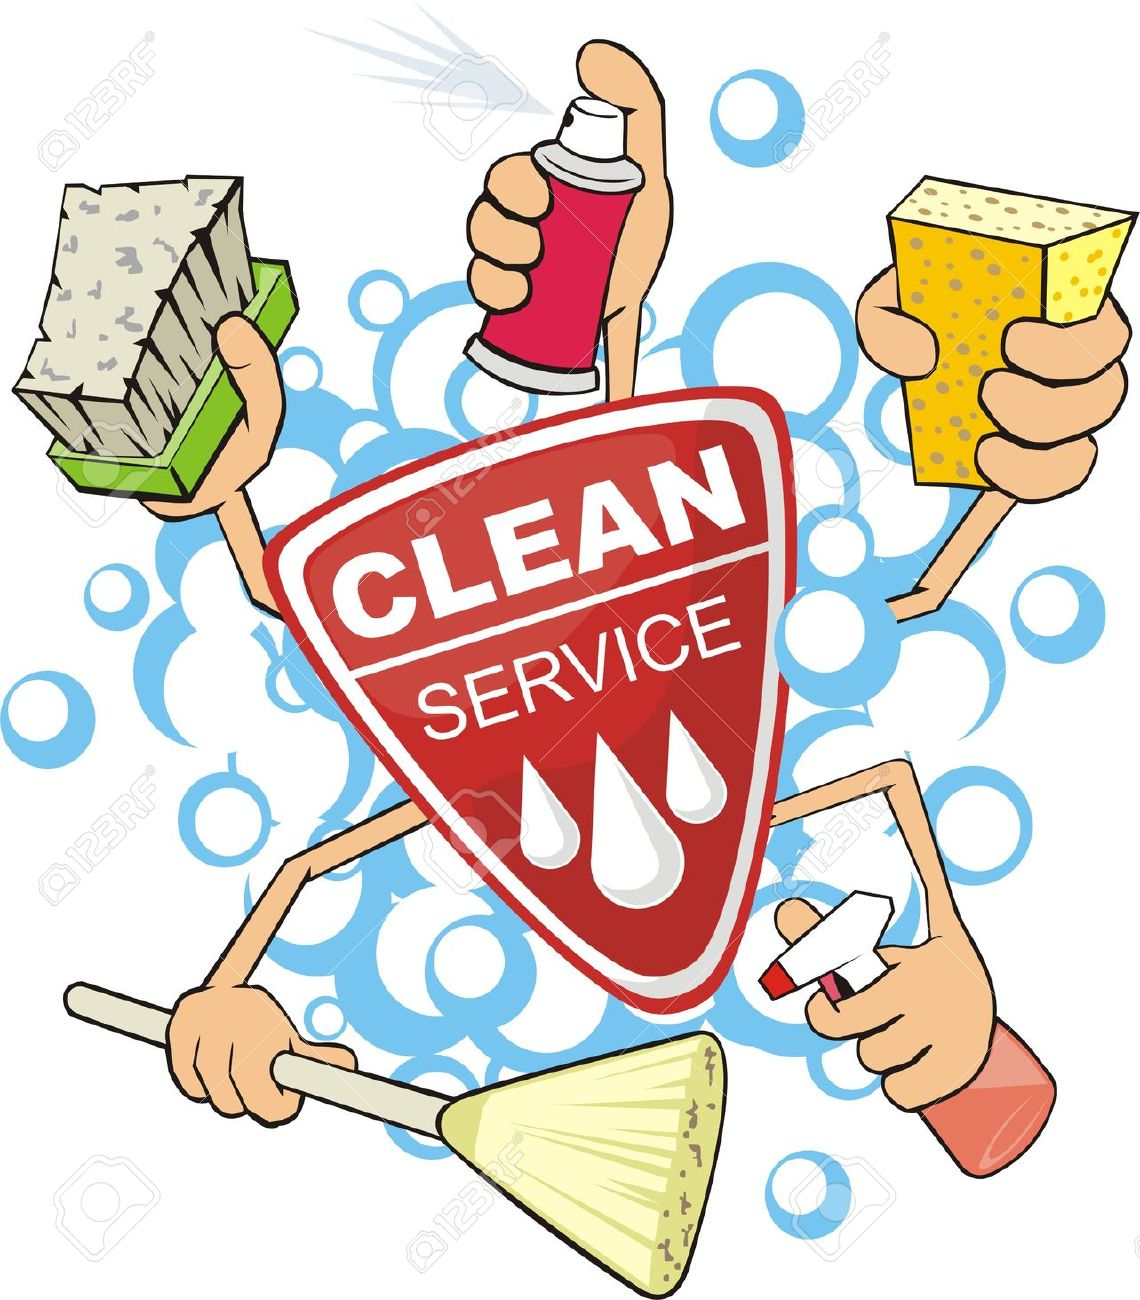 Free Clipart Cleaning Services.